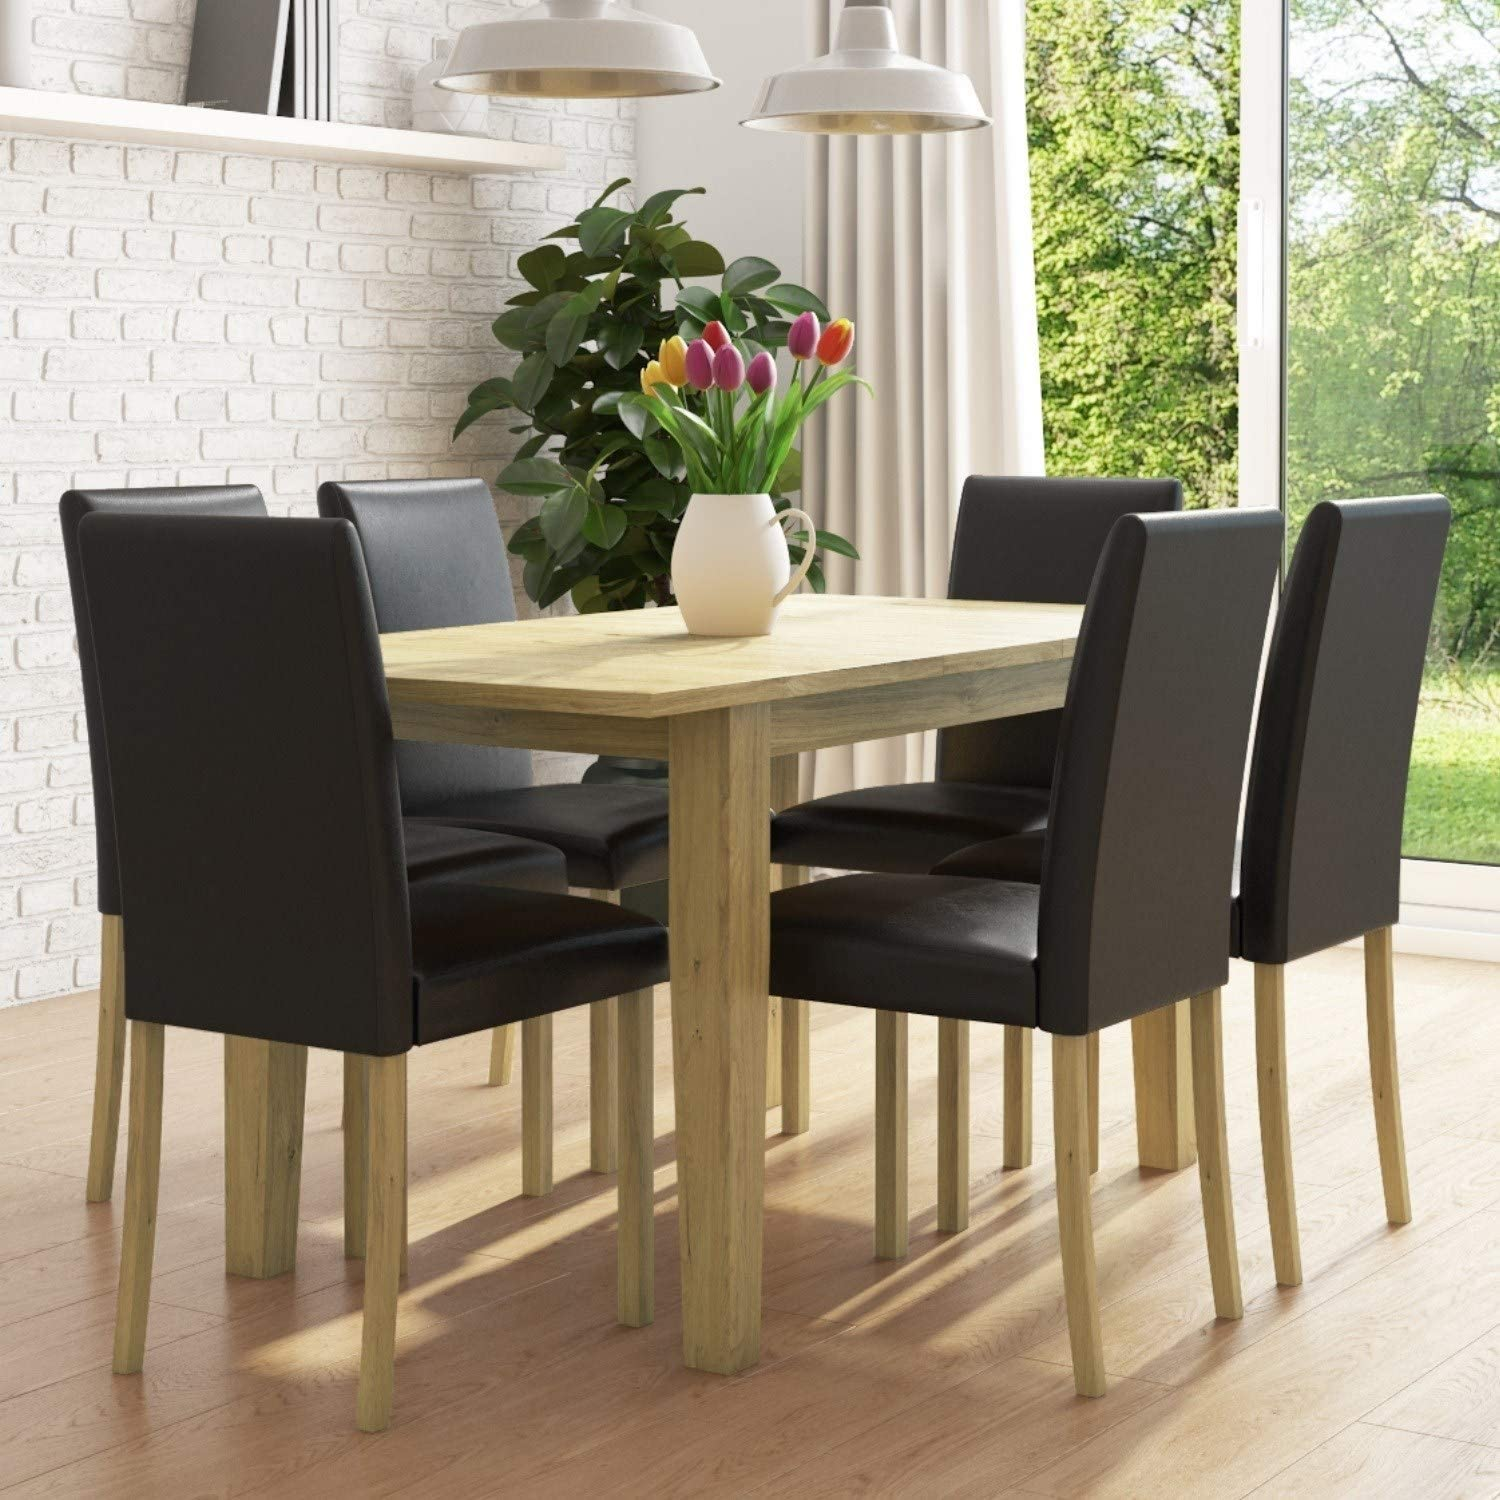 New Haven Oak Extendable Dining Set With 6 Black Leather Dining Chairs Amazon Co Uk Kitchen Home